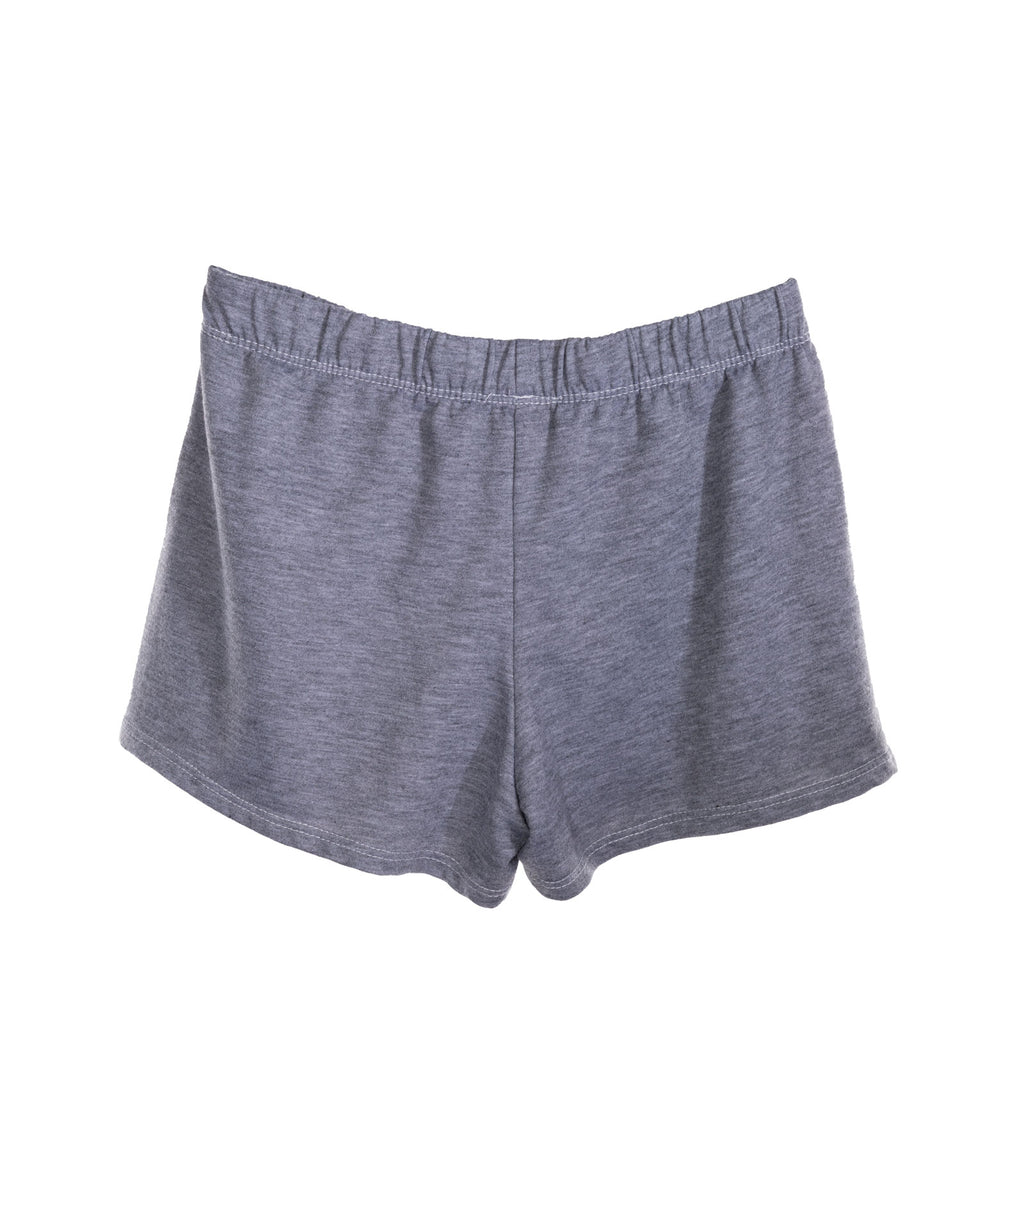 Small Pink Heart Shorts Heather Grey